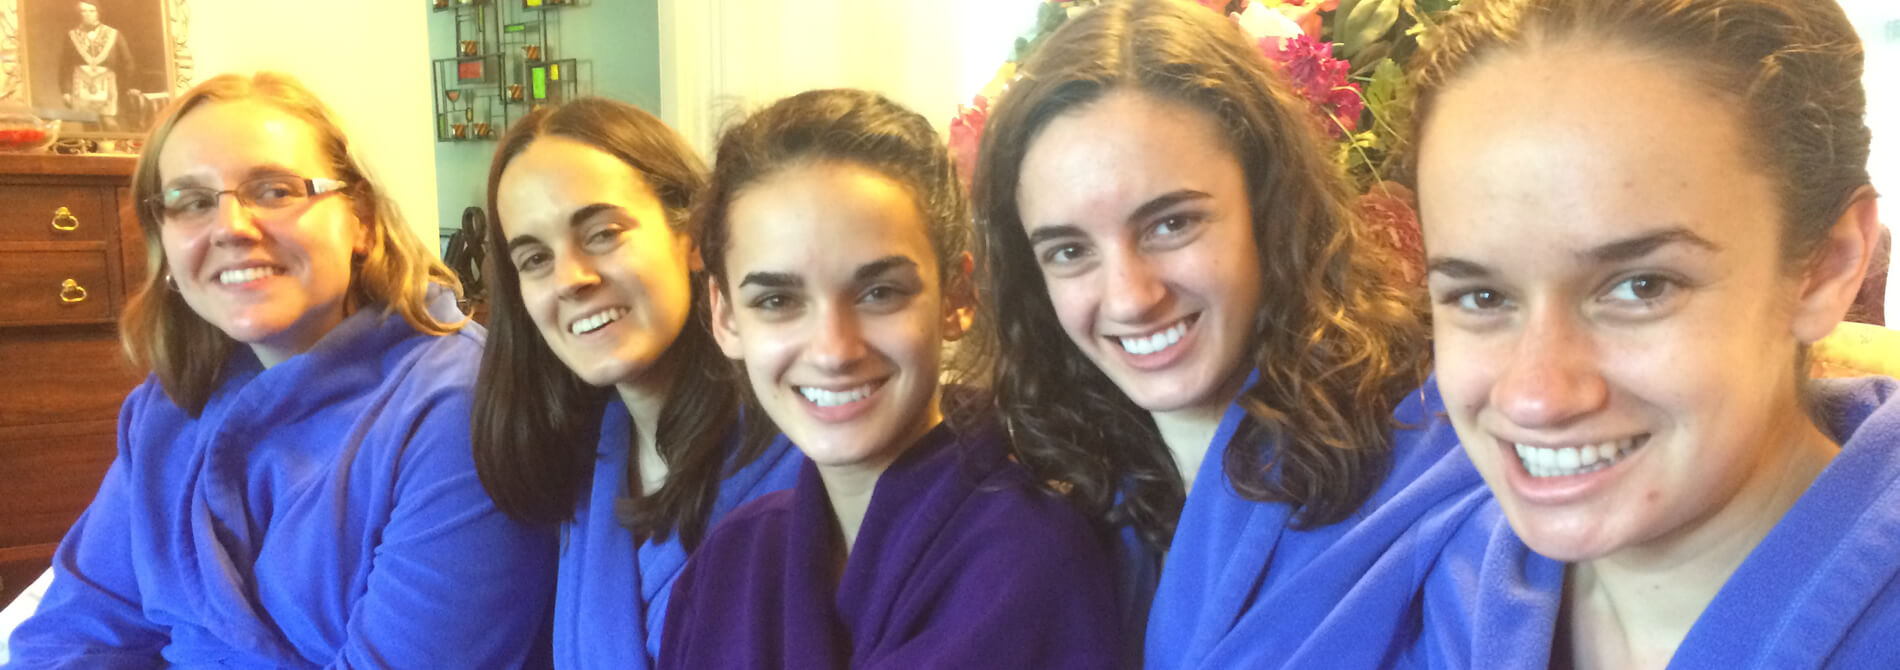 women in blue robes surrounding woman in purple robe at in-home spa day